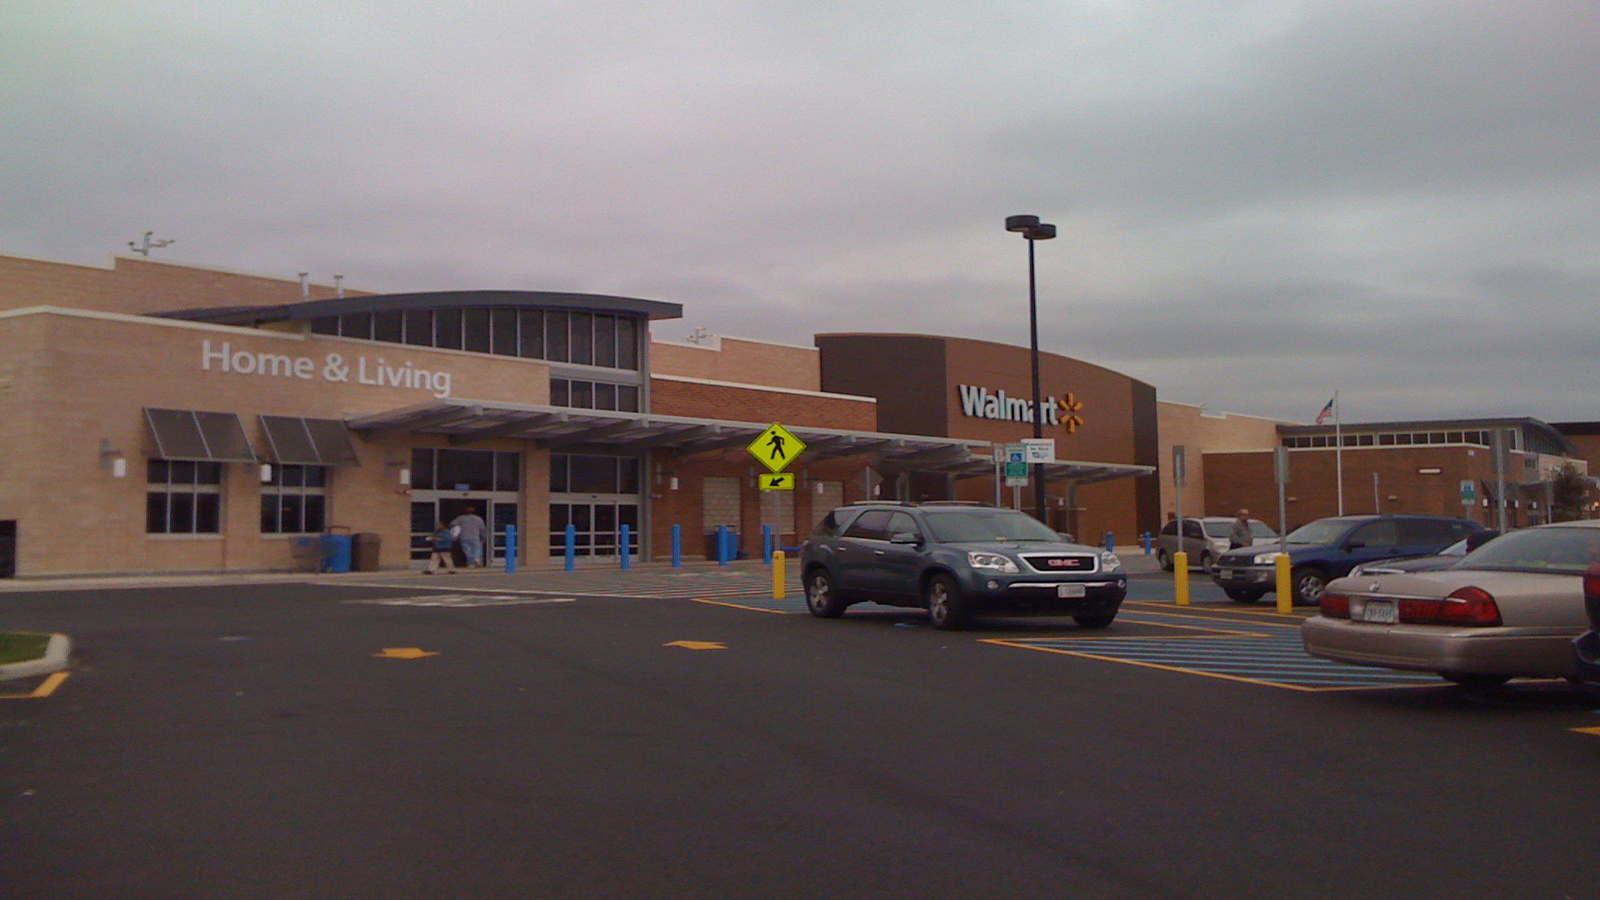 wal-mart supercenter coming to la plata